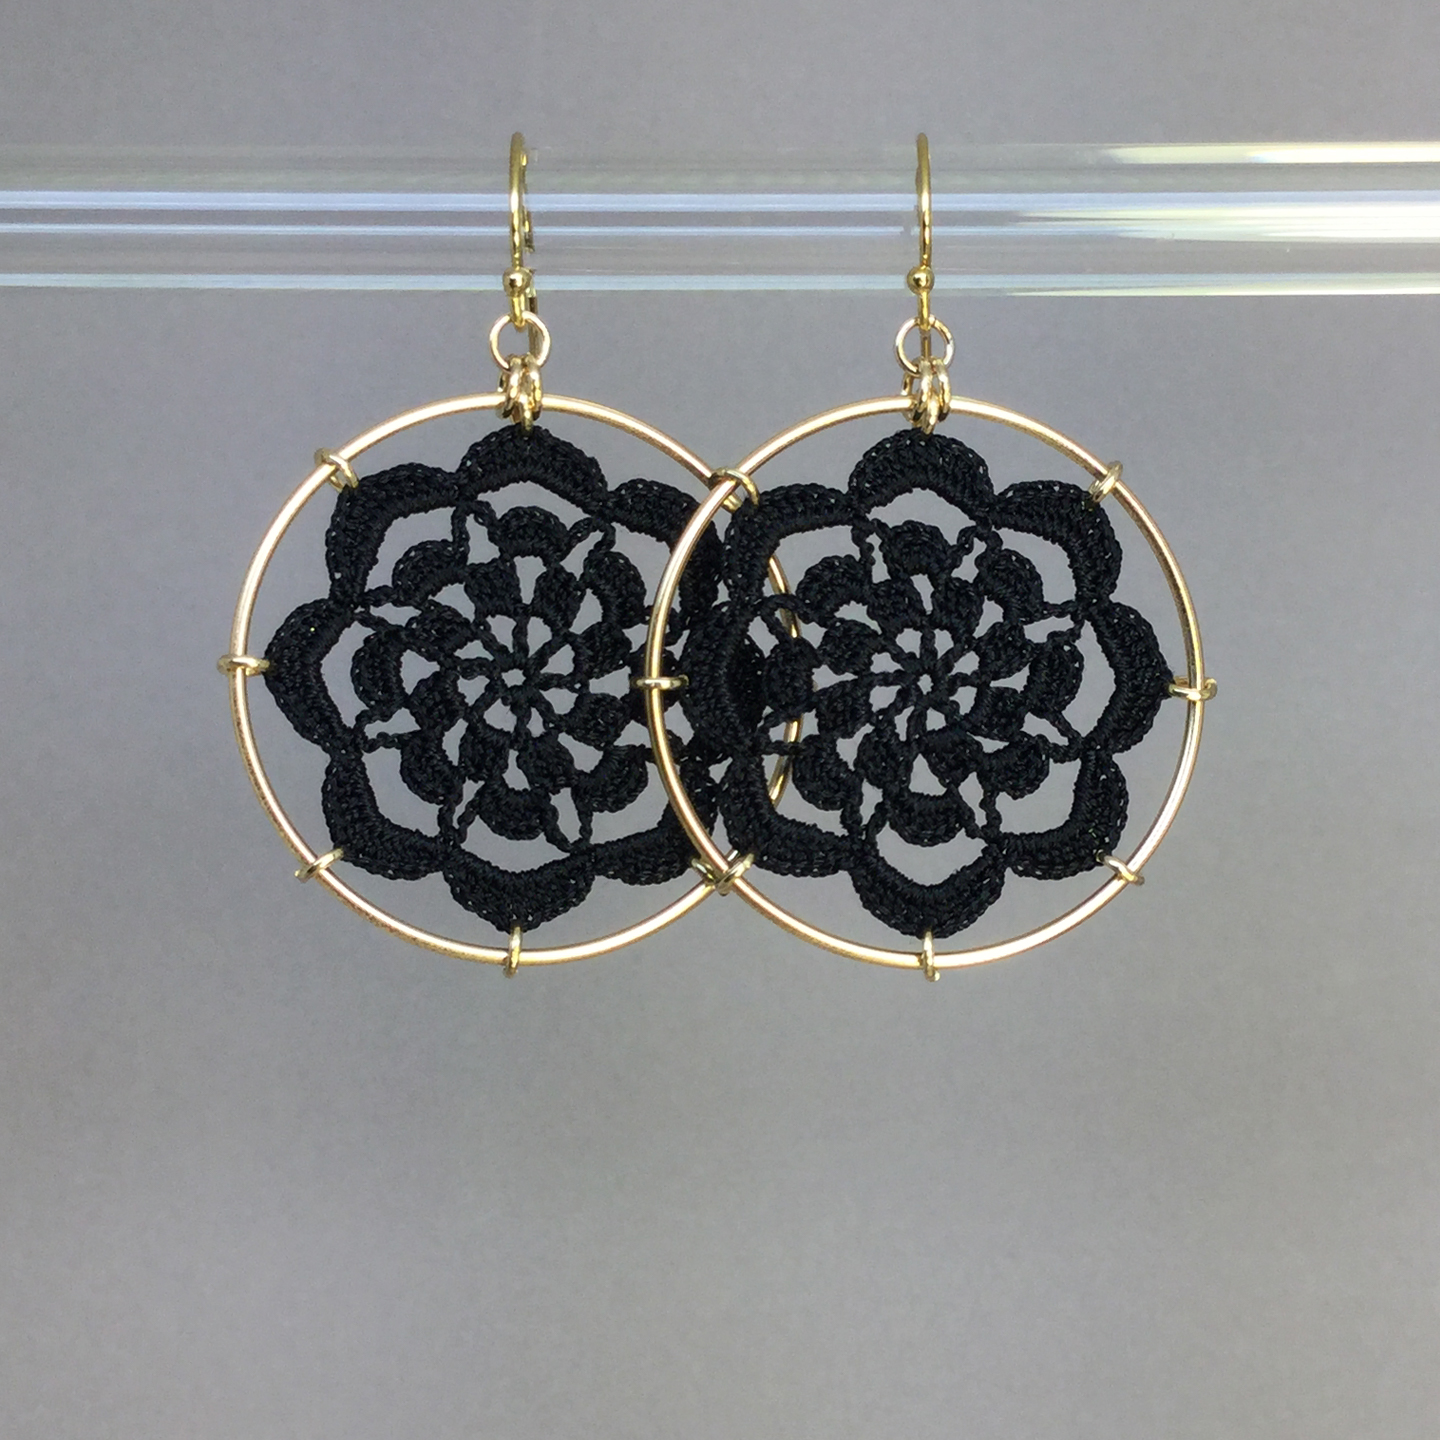 Serendipity earrings, gold, black thread